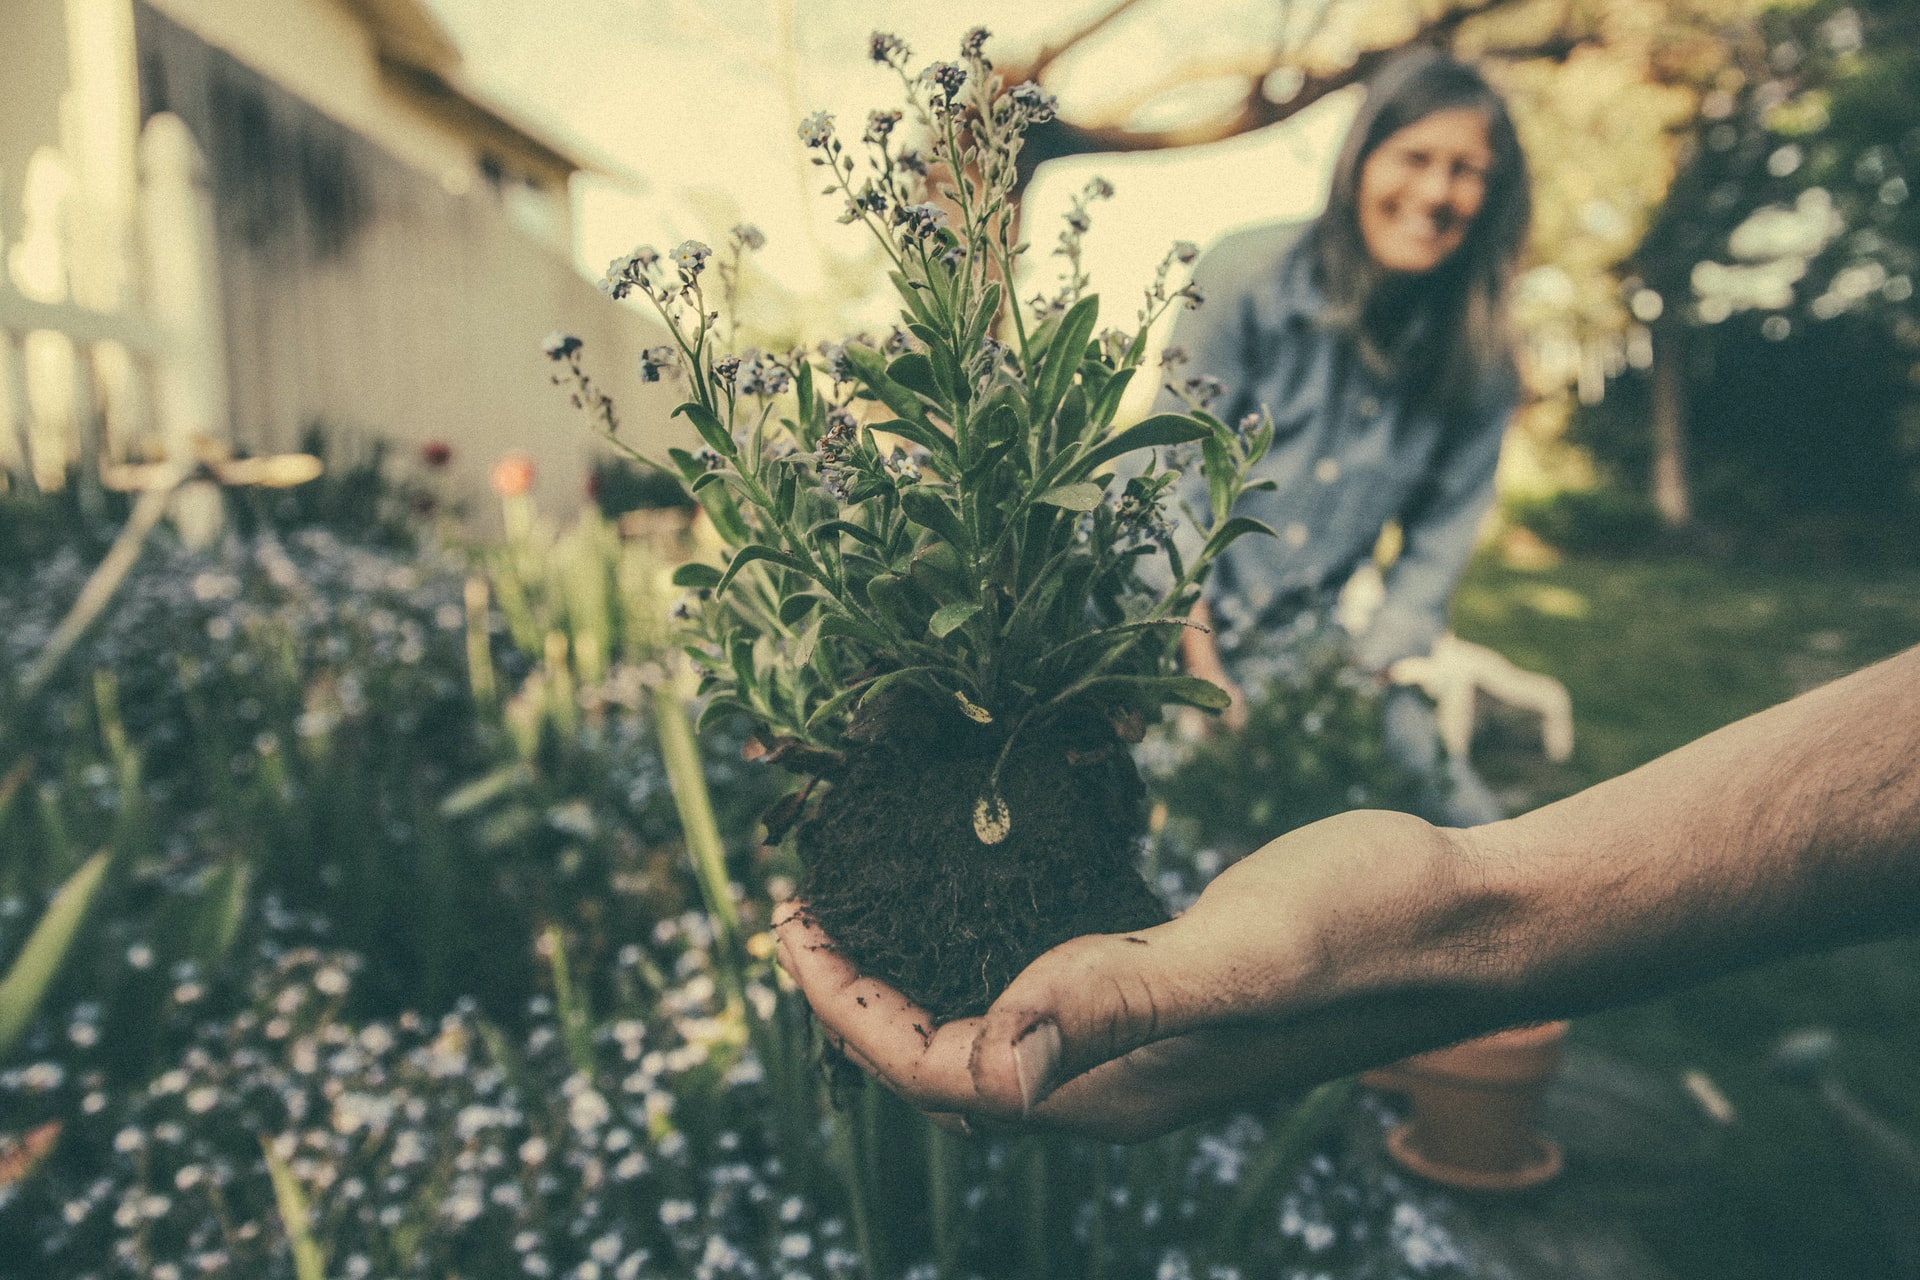 Gardening is good for wellbeing